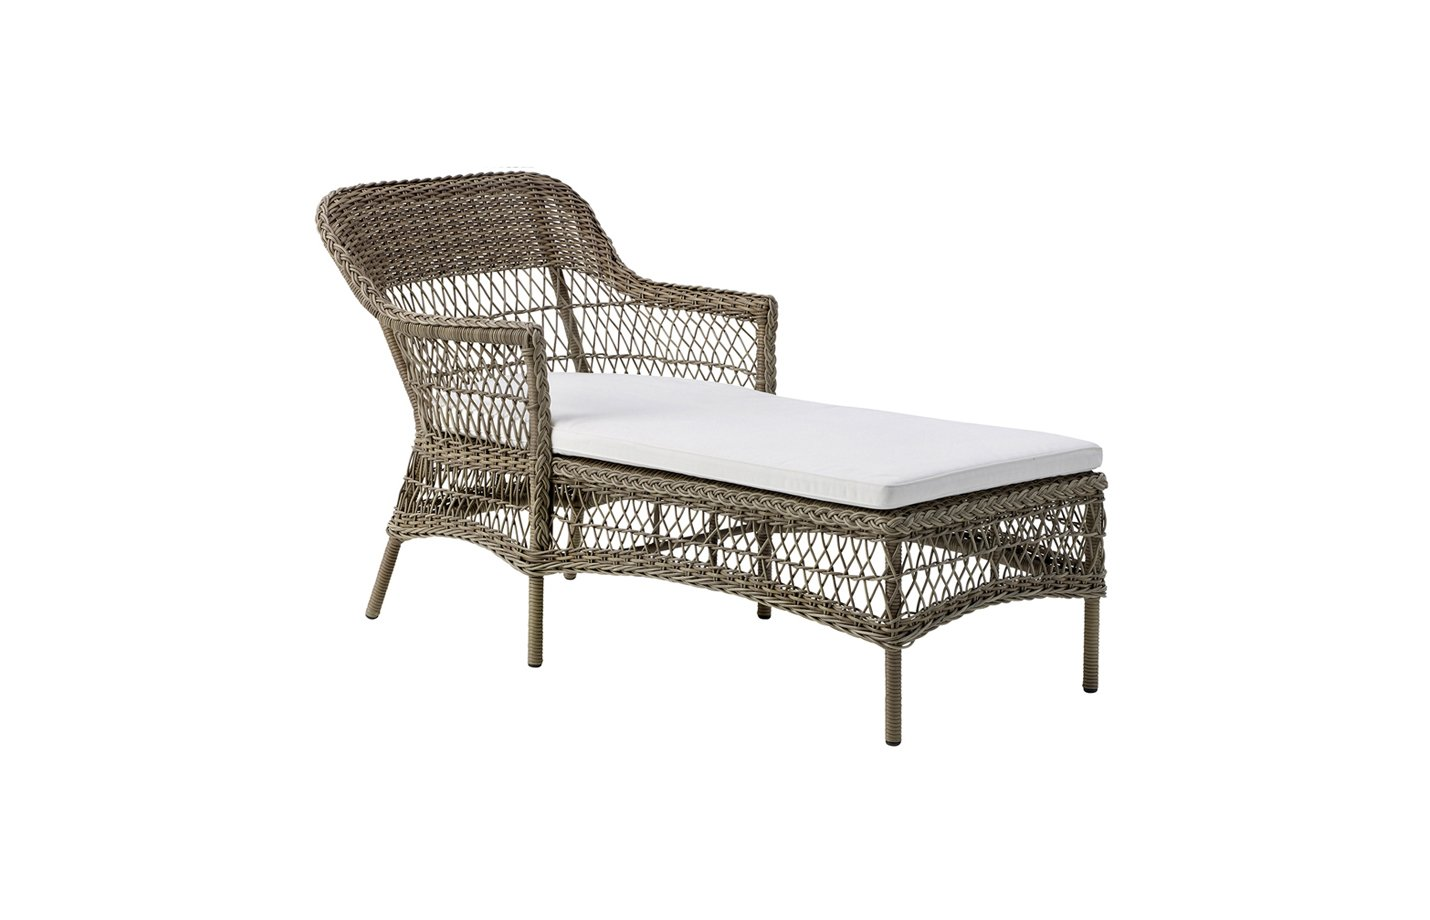 Olivia chaise lounger – Antique